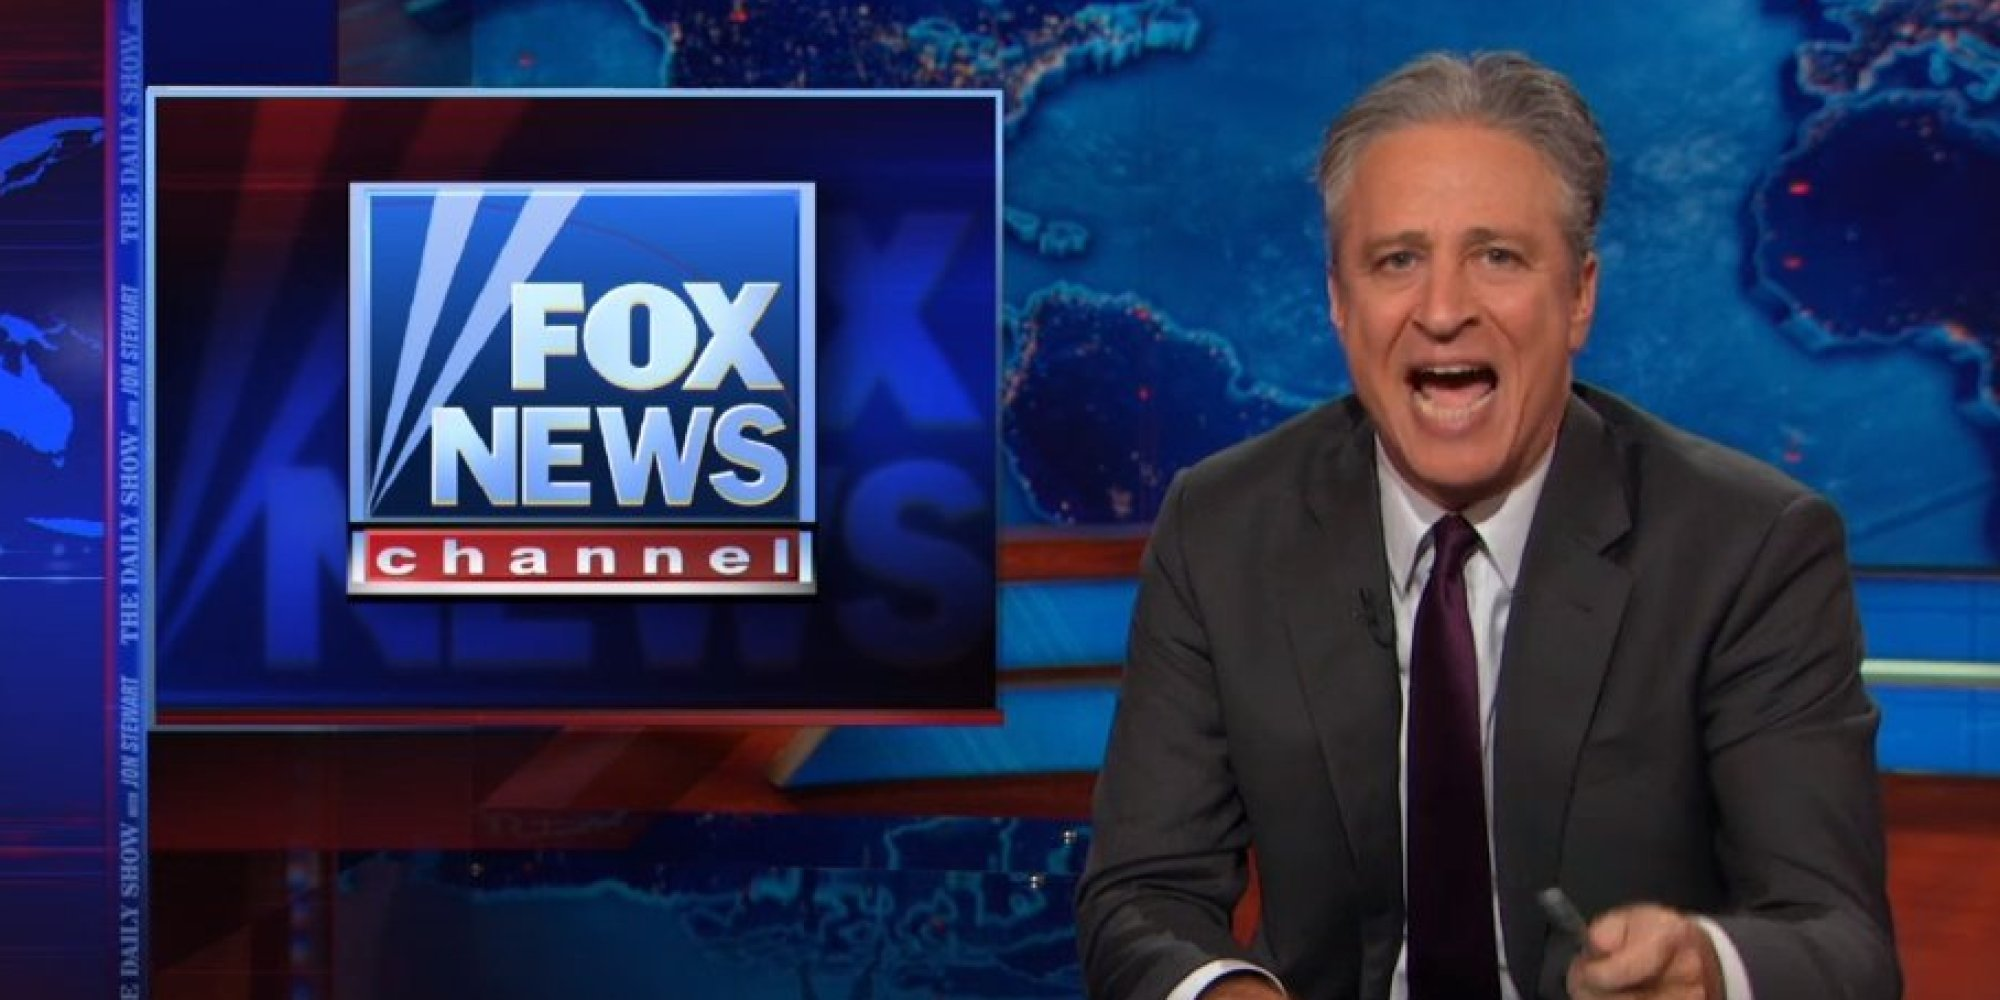 News: Jon Stewart Tells Fox News: 'Fuck You And All Your False